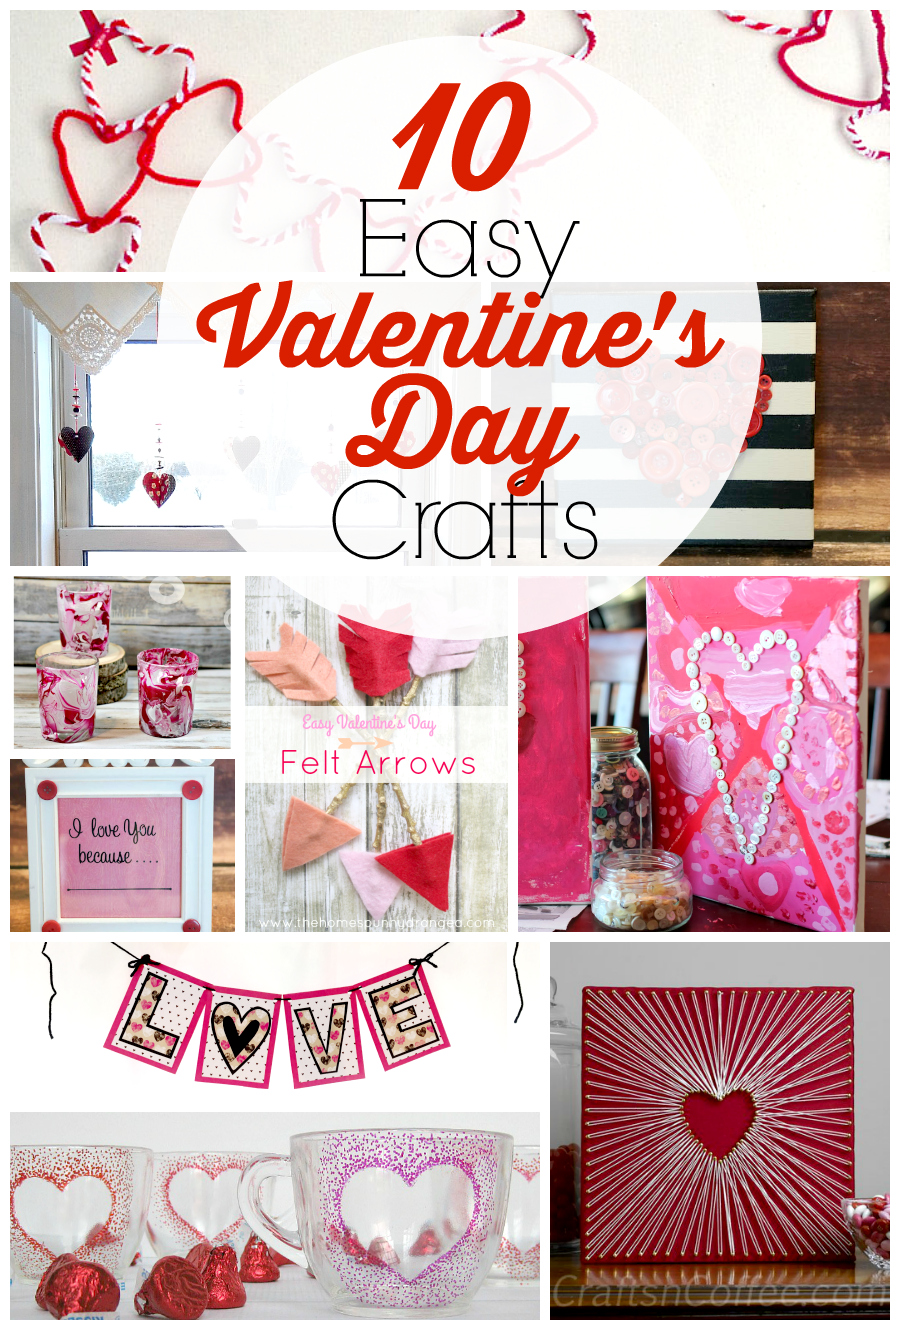 Looking for some easy DIY craft projects for Valentine's Day? You will love these 10 Easy Valentine's Day Crafts for Adults (No talent required!)